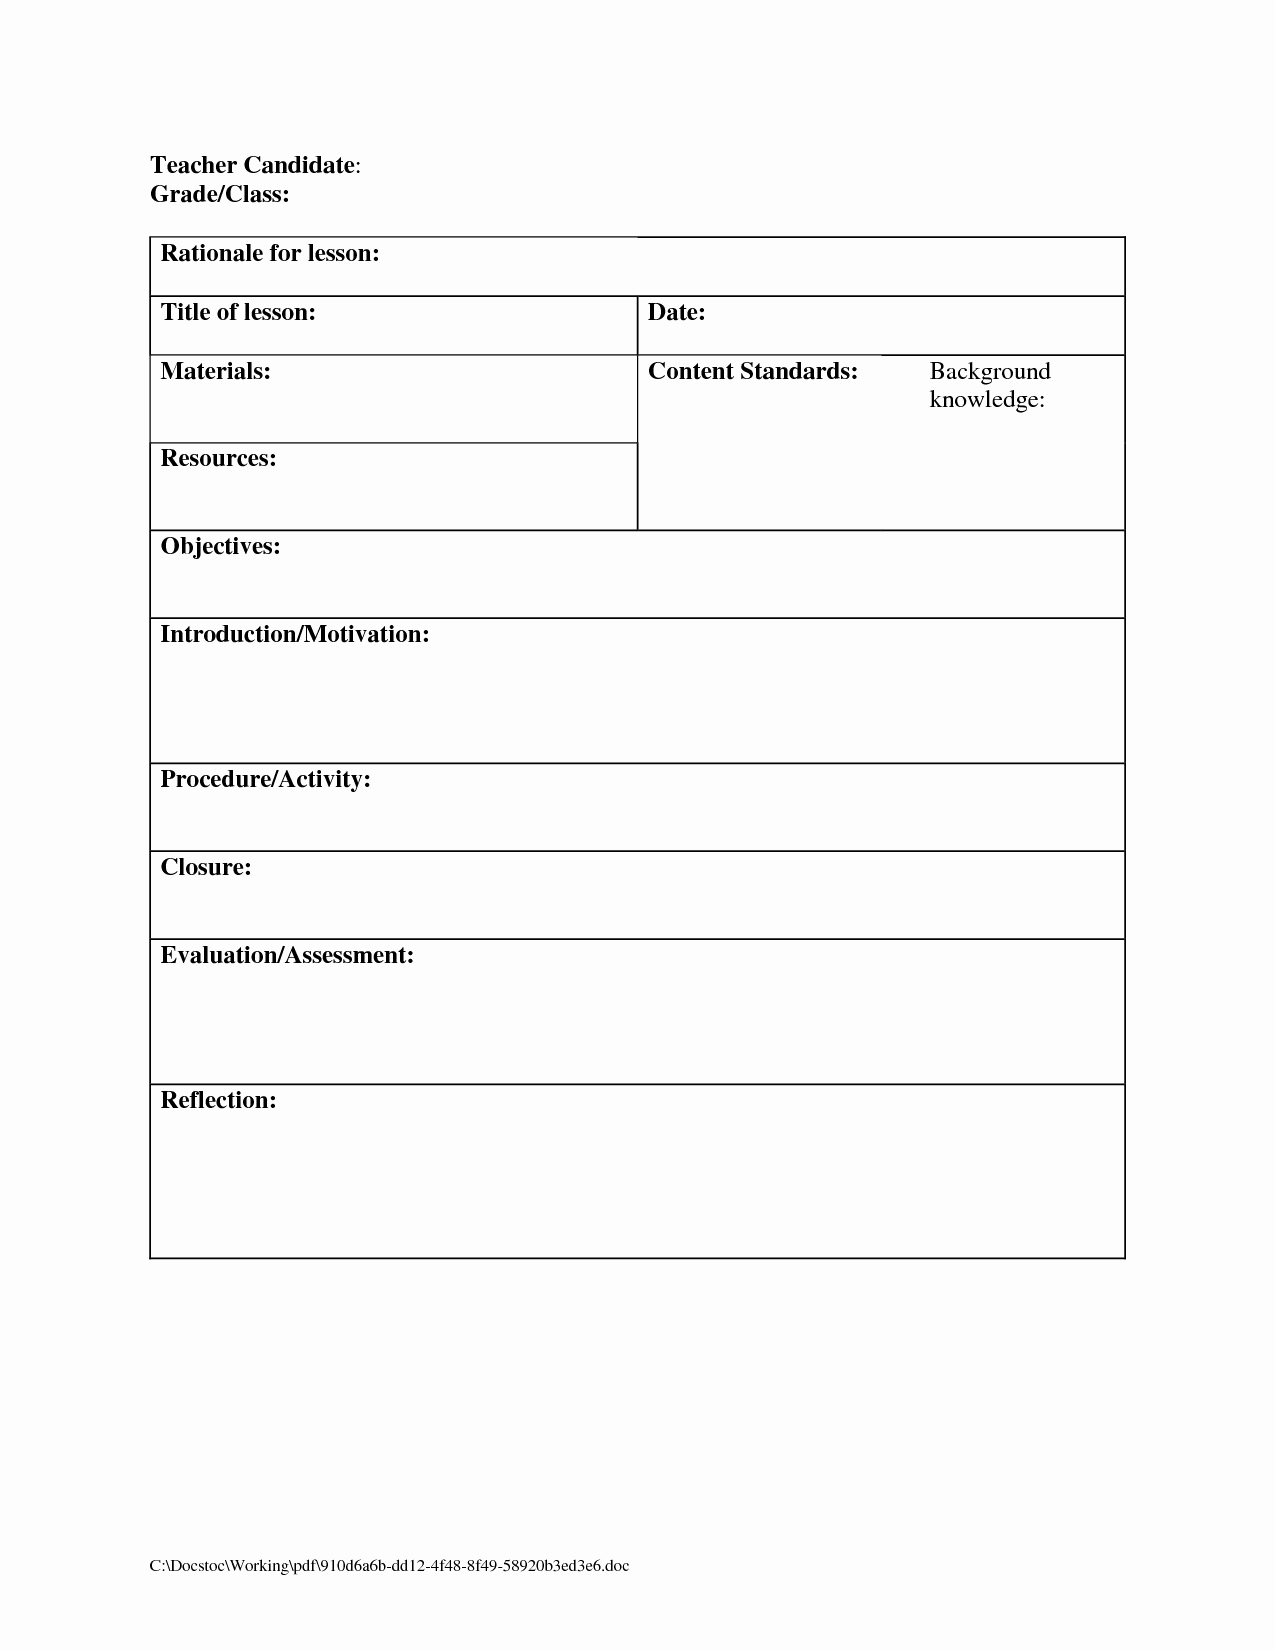 Blank Lesson Plan Template Free Elegant Printable Blank Lesson Plans form for Counselors